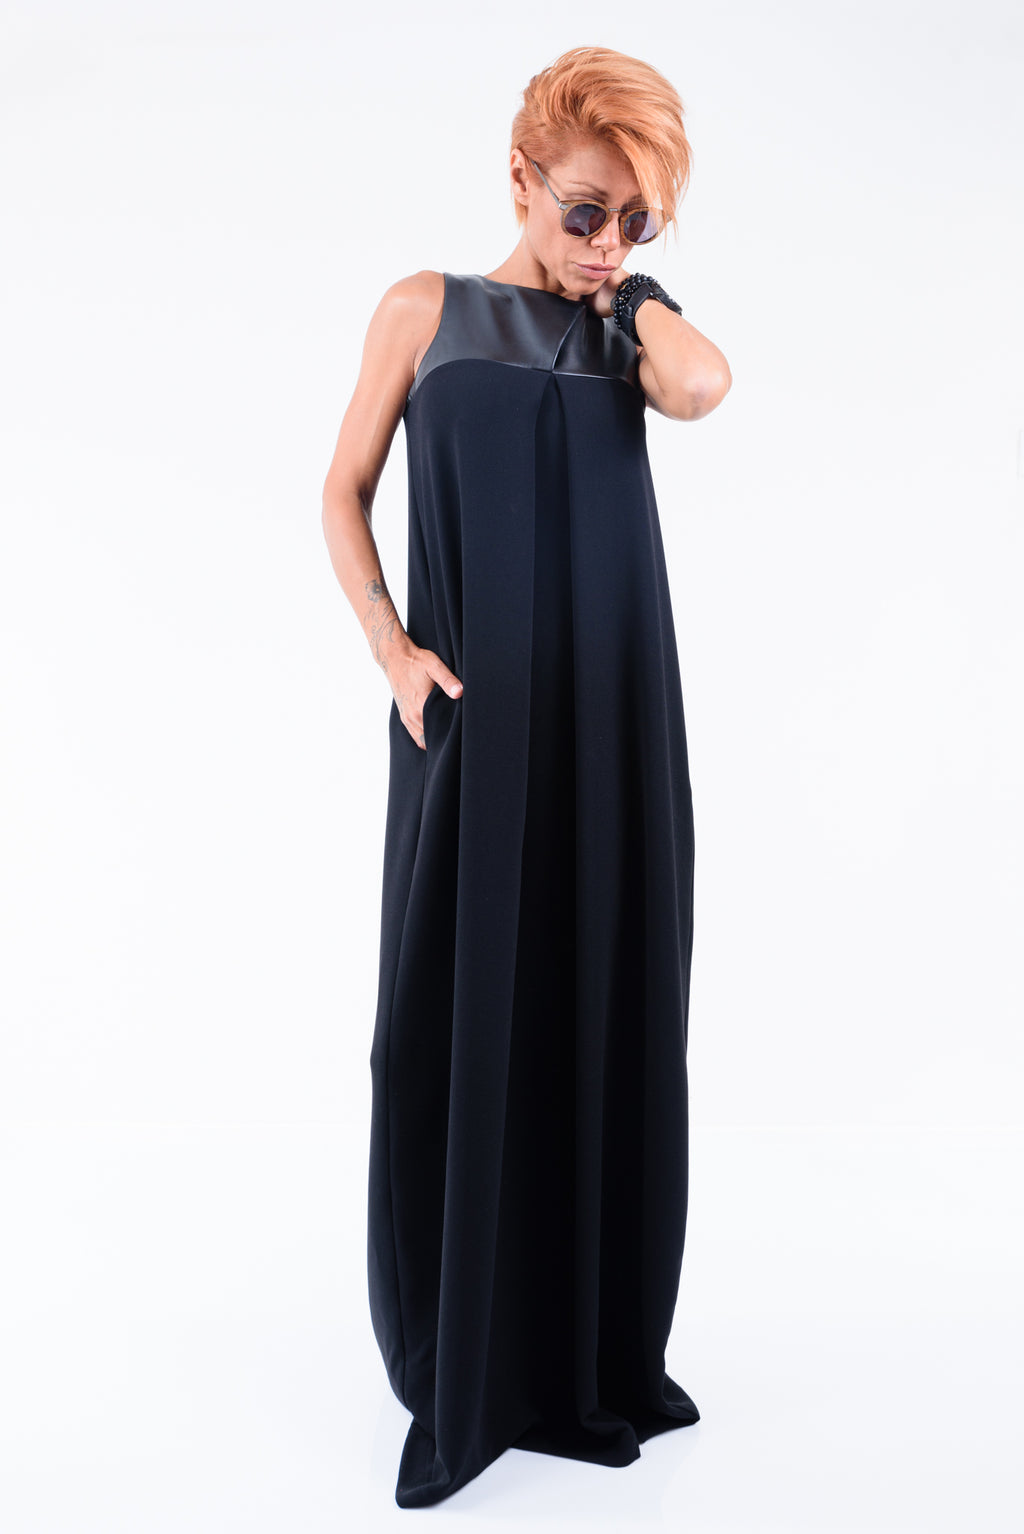 Infinity Kaftan Black Dress - Clothes By Locker Room